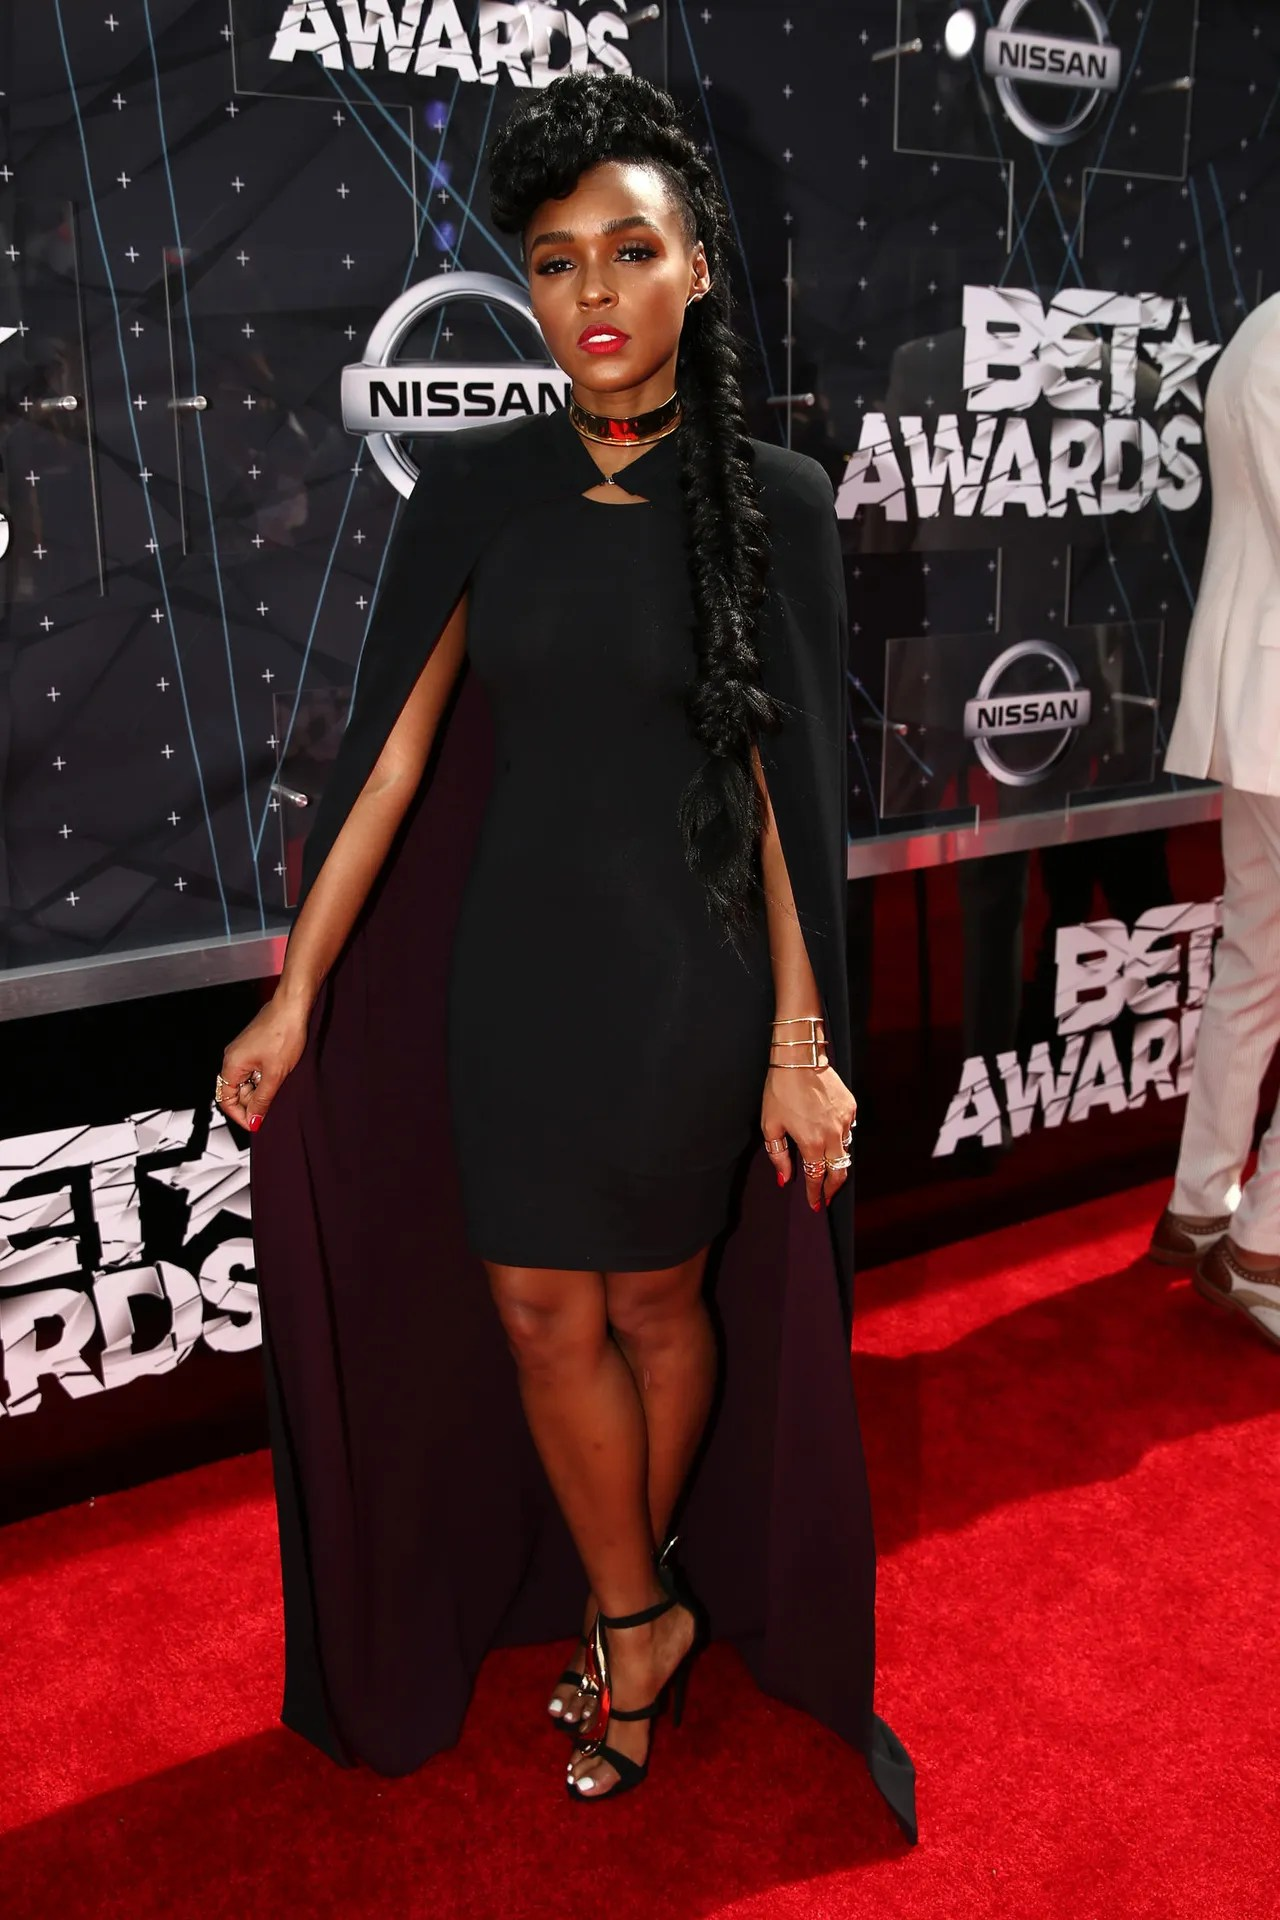 Bet Awards Red Carpet 2015 Best Dressed Celebrities Glamour